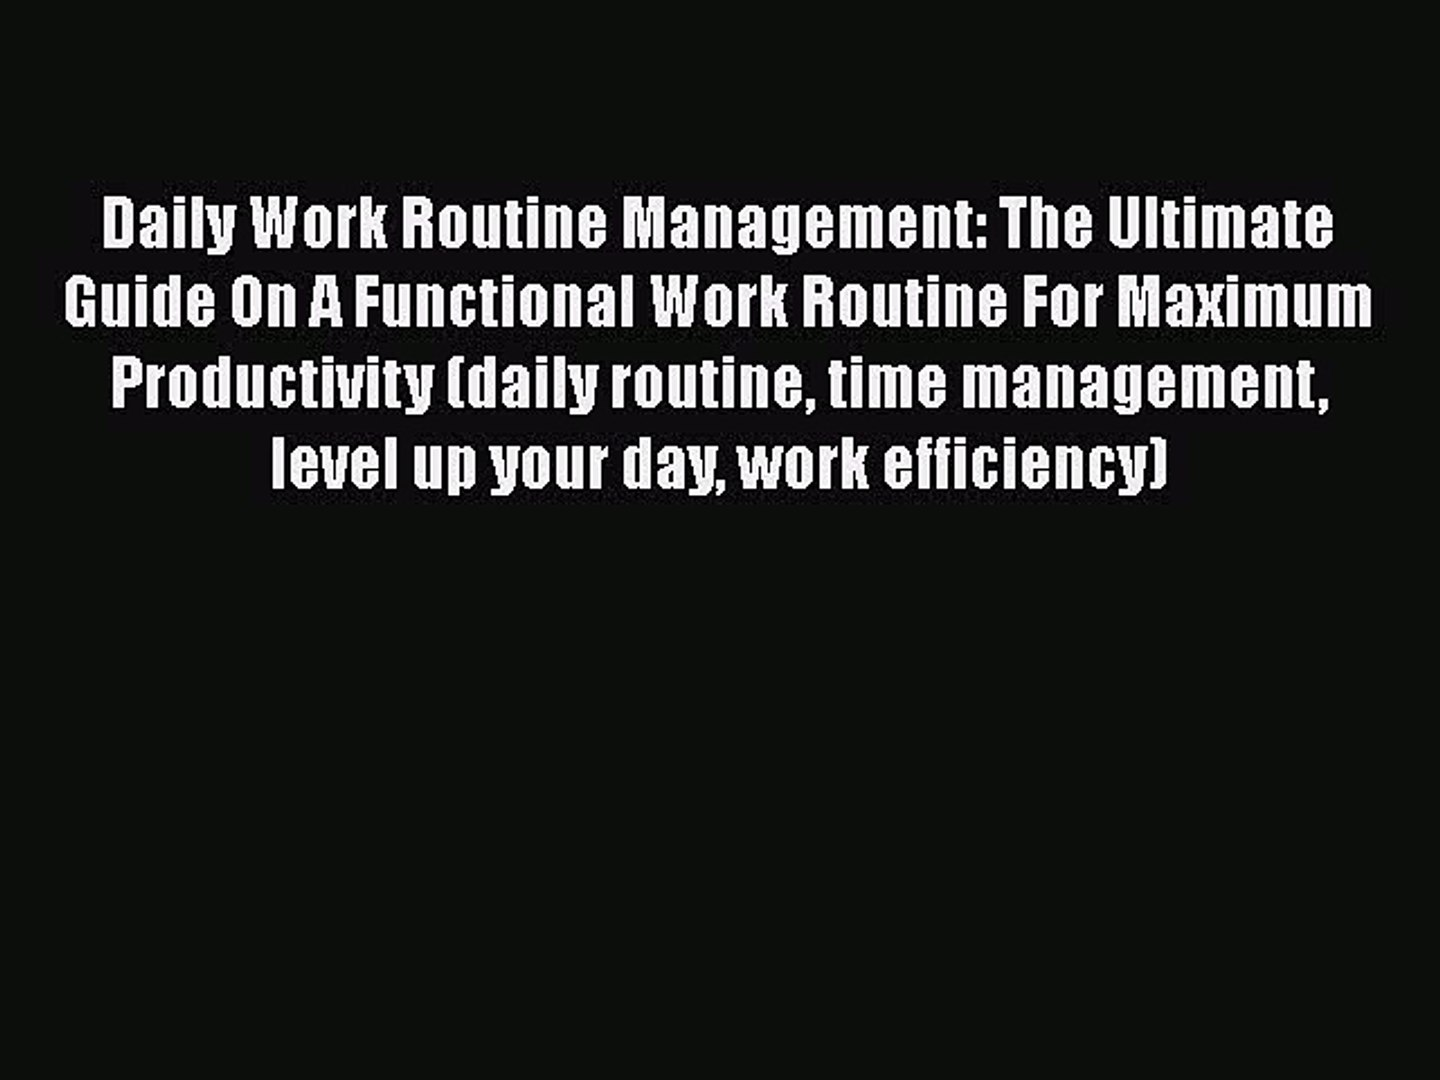 [Read Book] Daily Work Routine Management: The Ultimate Guide On A Functional Work Routine